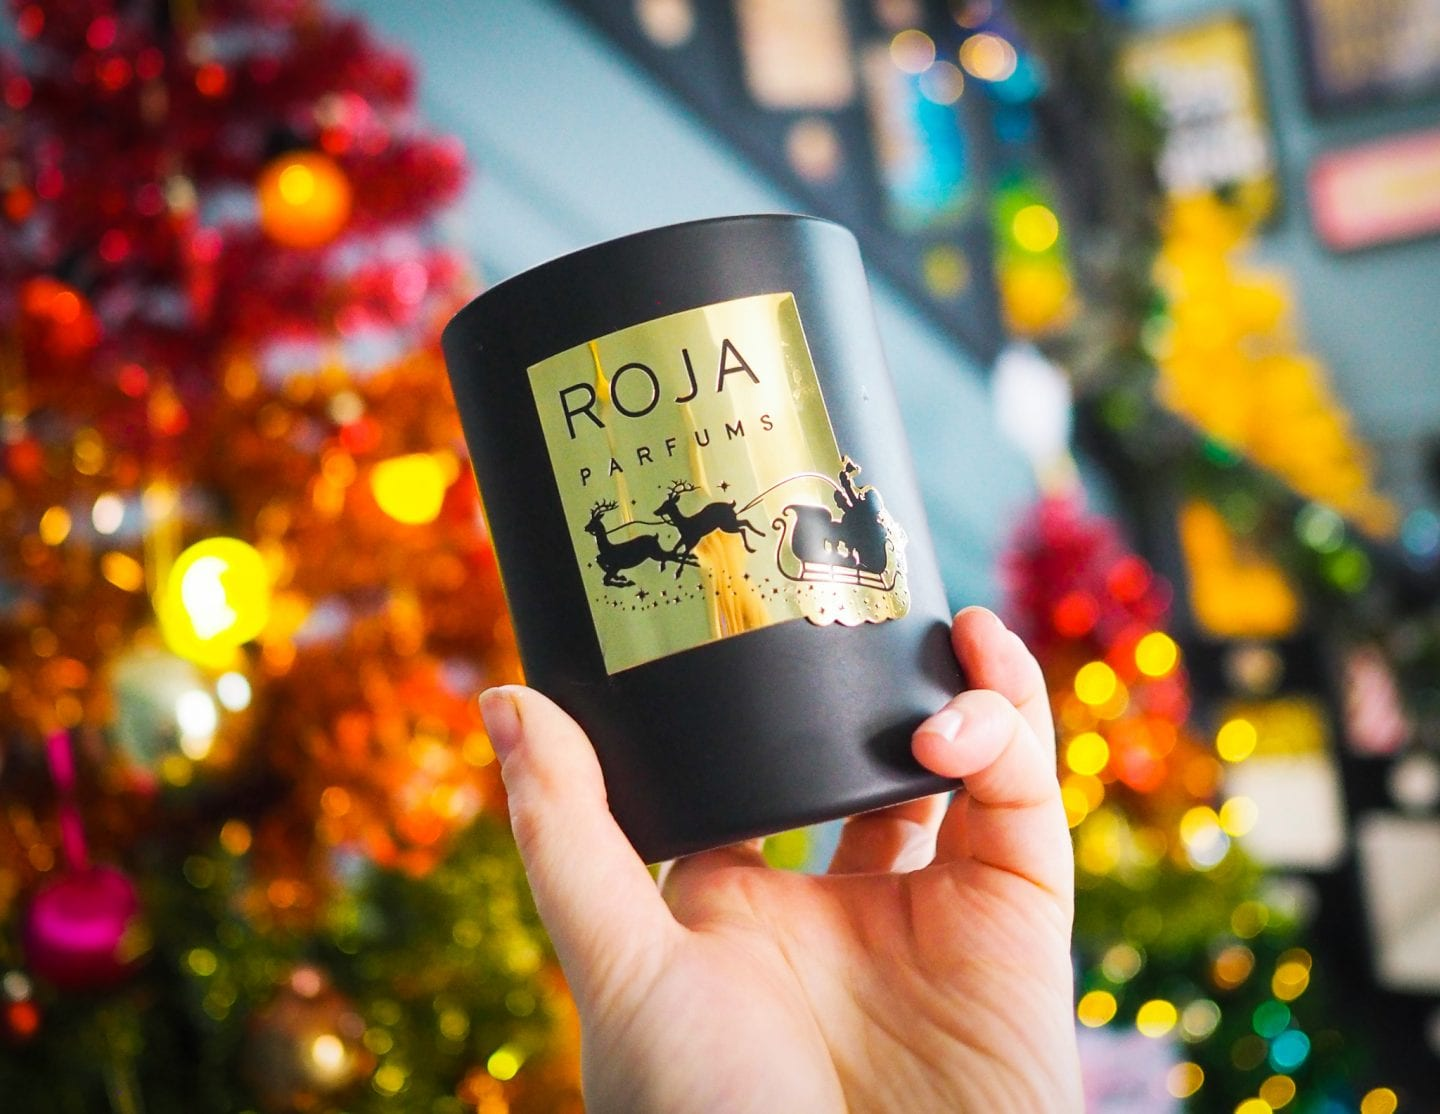 What's so special about Roja Parfums 'Essence of Christmas' Candle?! Review